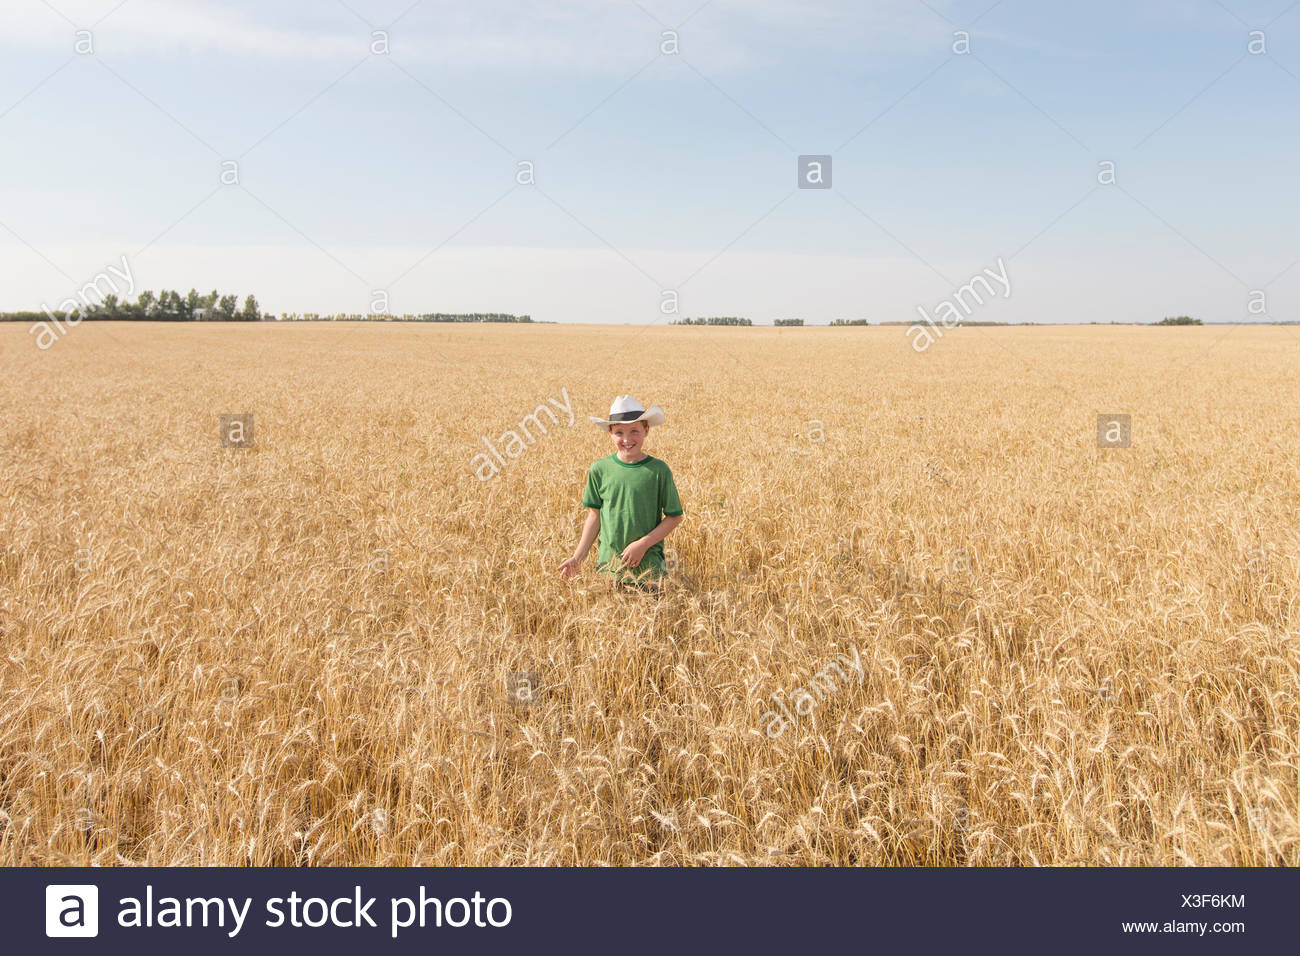 Young boy standing in wheat field. - Stock Image